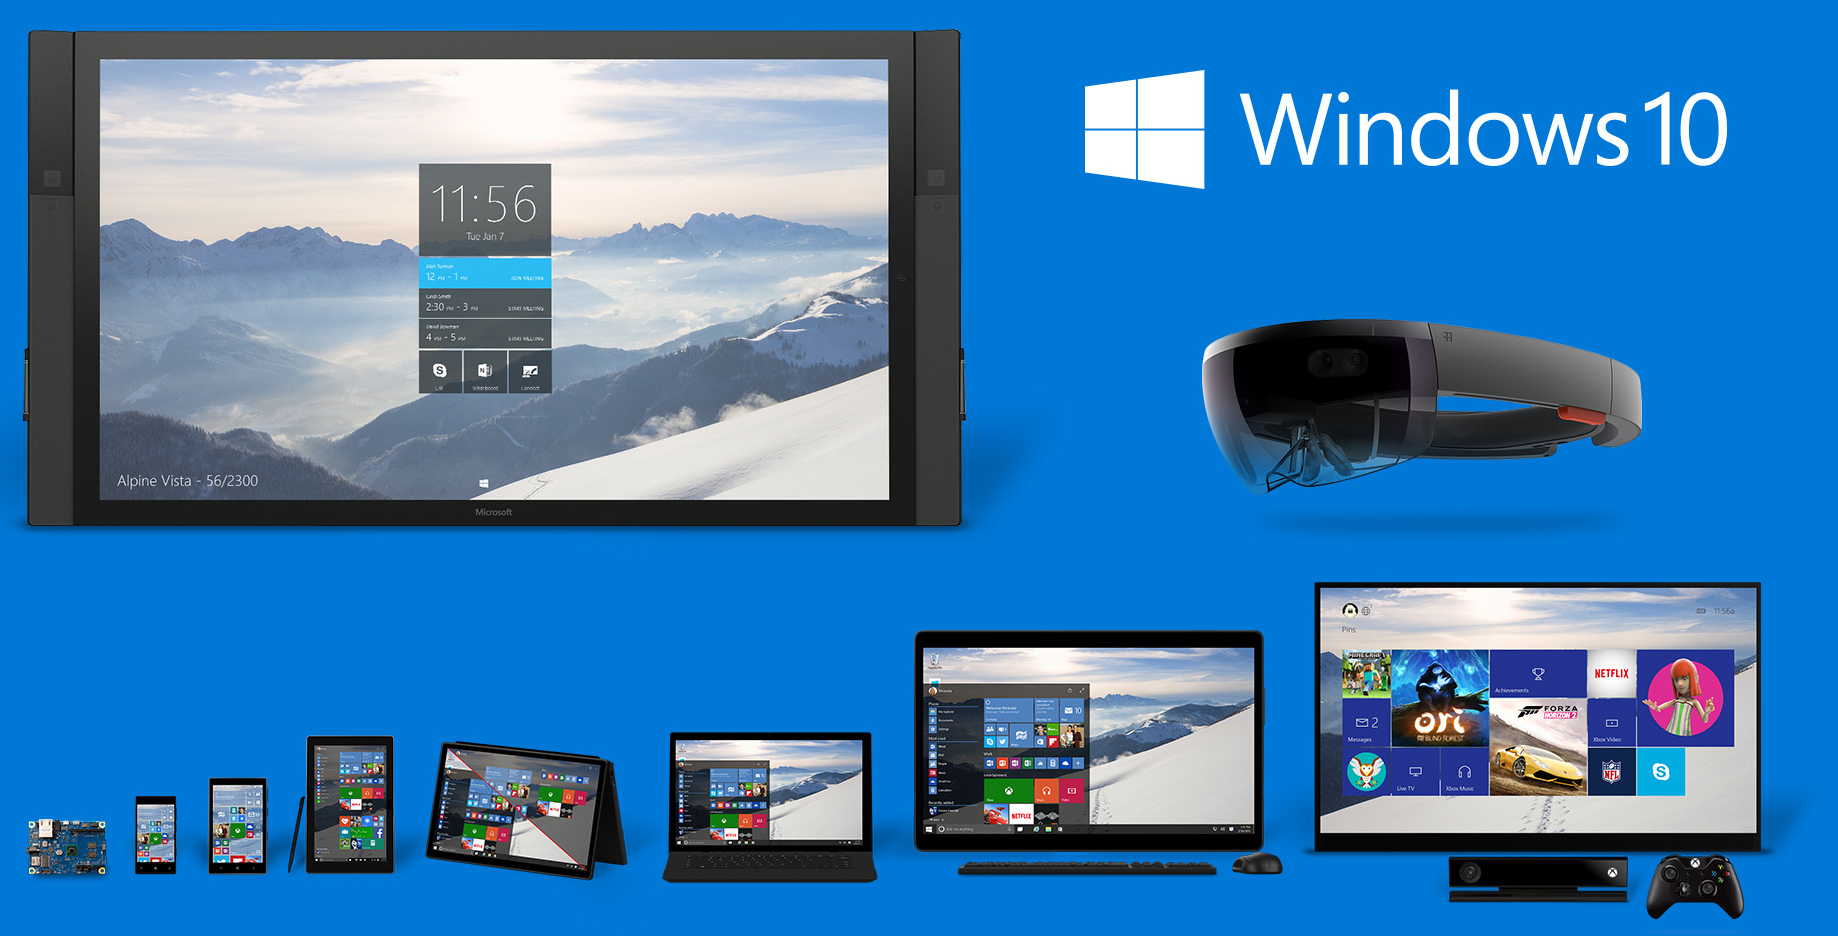 microsoft_windows_10_devices.jpg